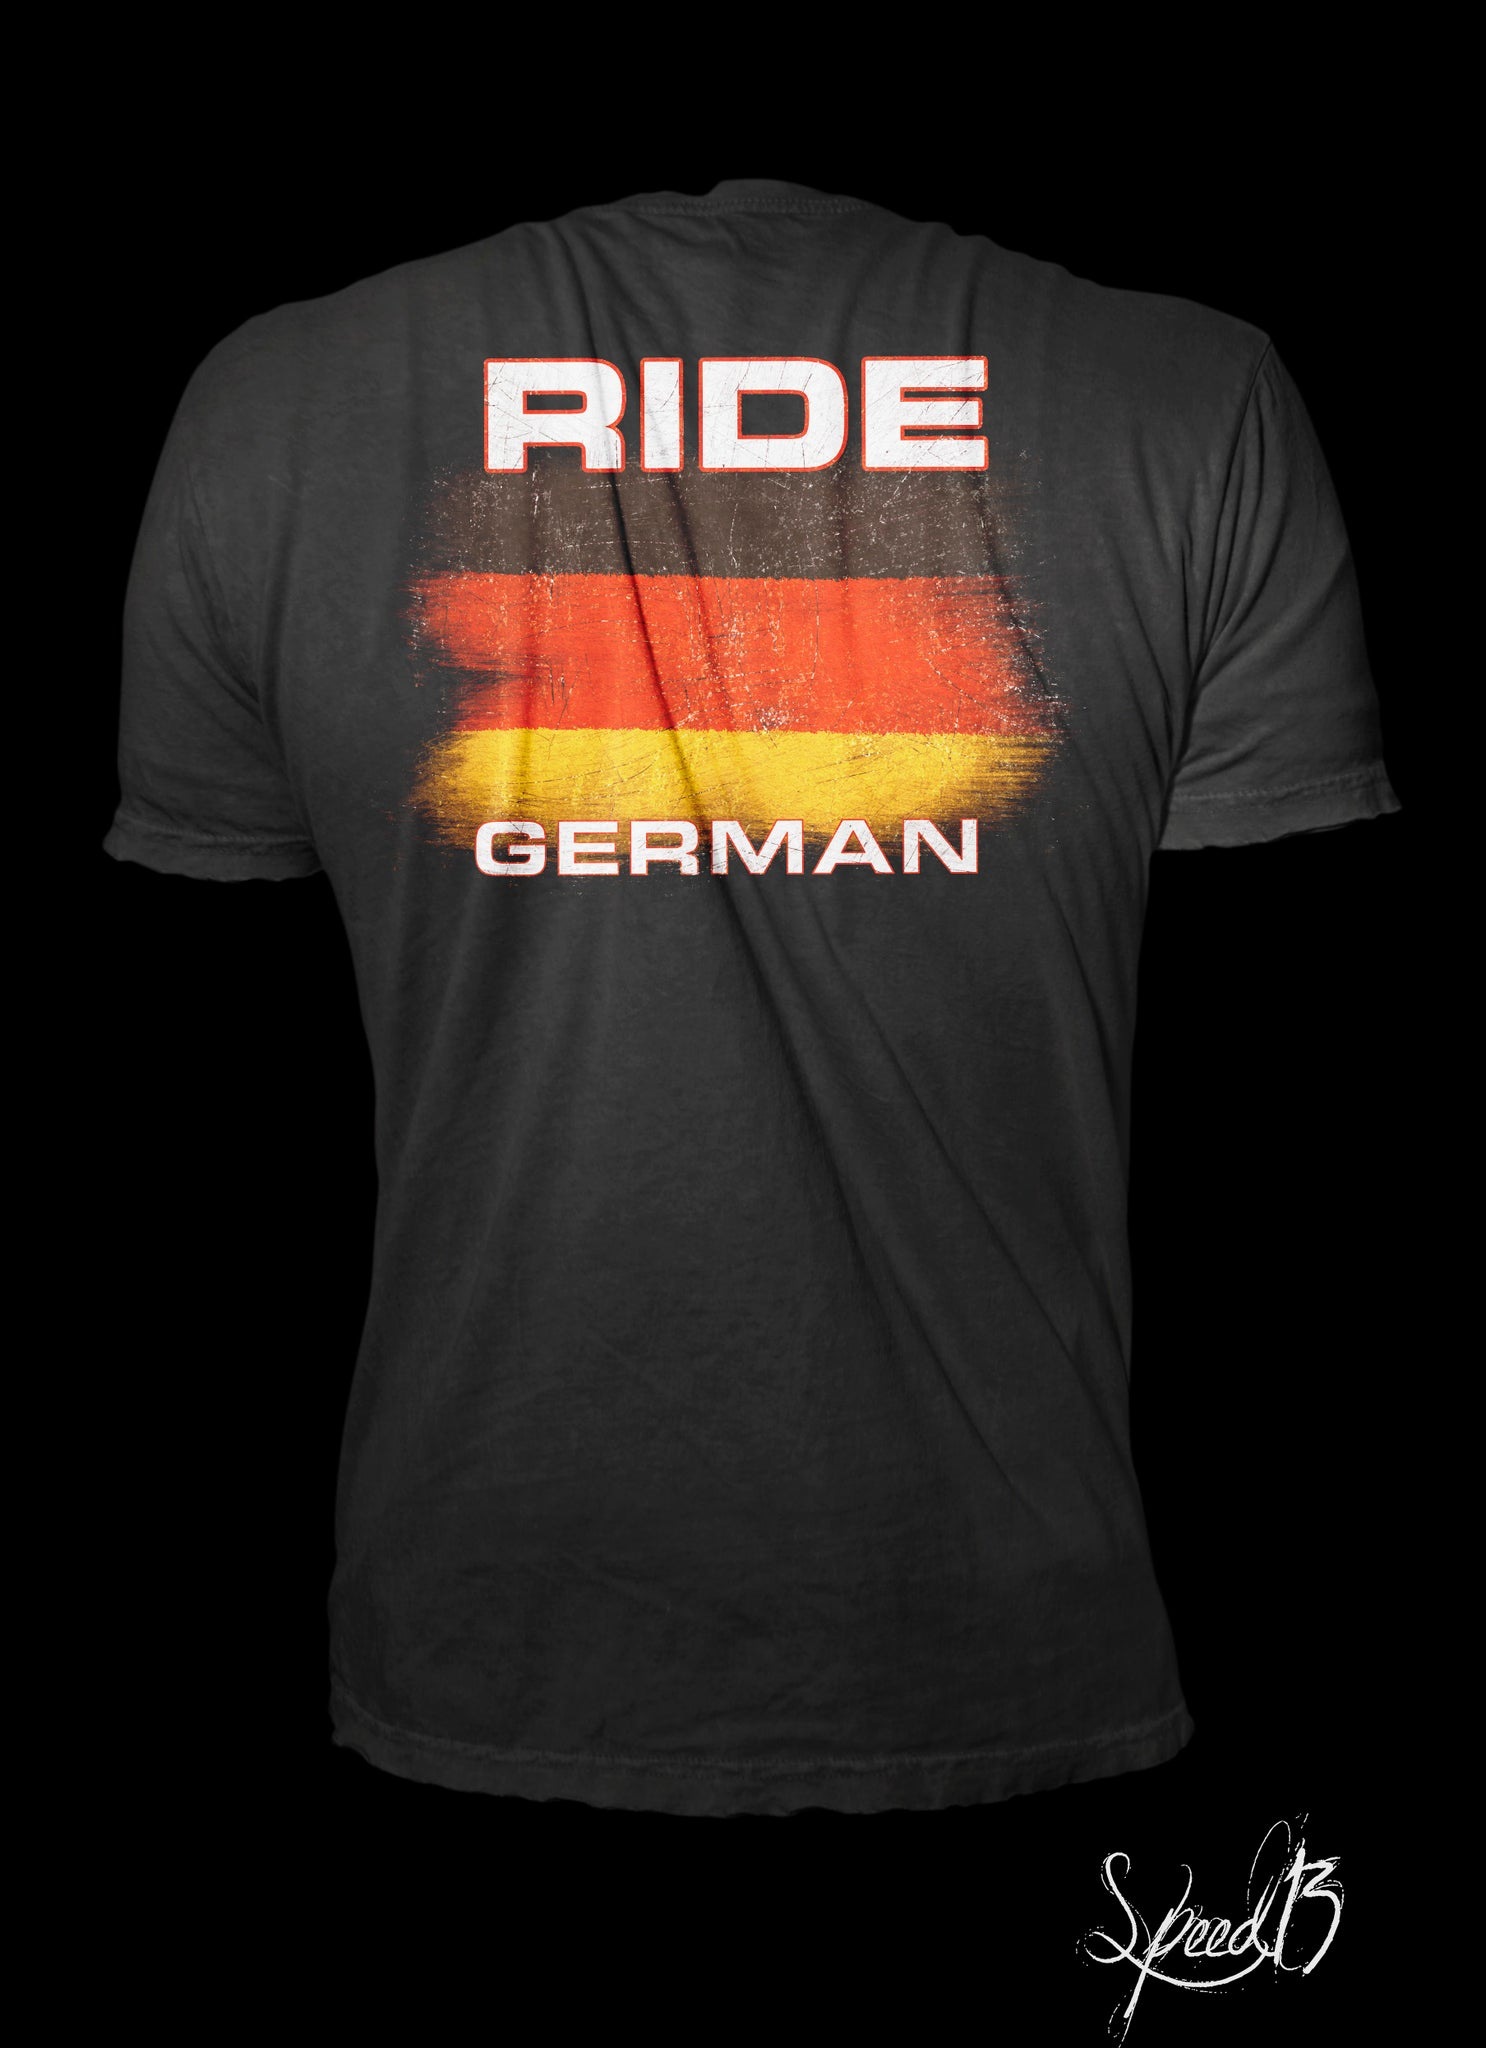 Ride German